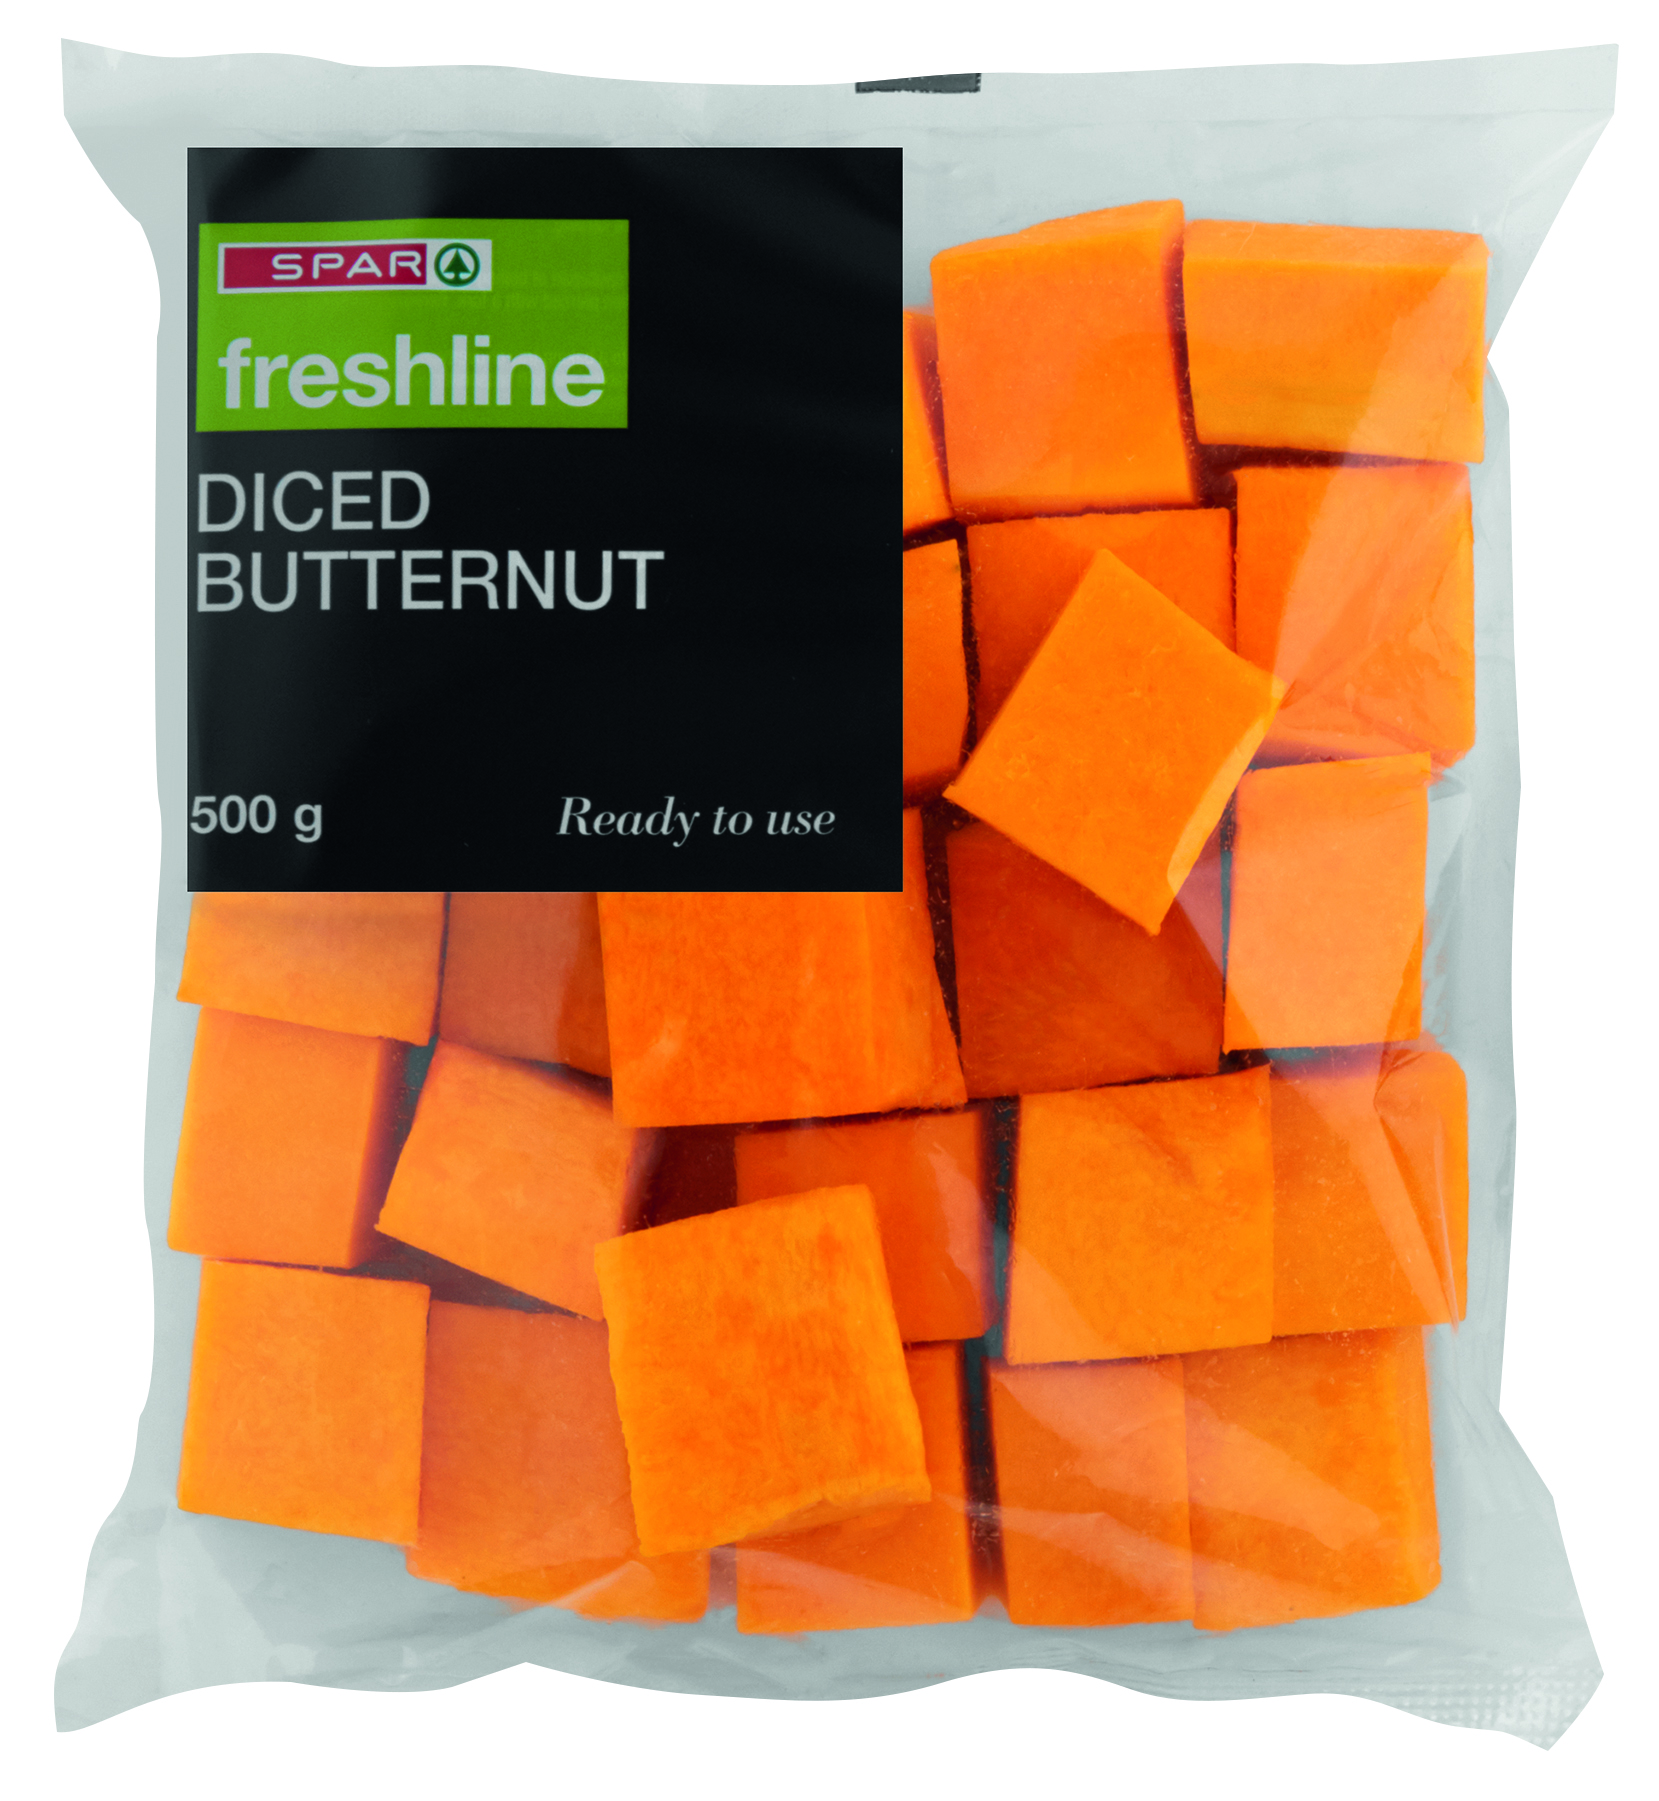 freshline diced butternut